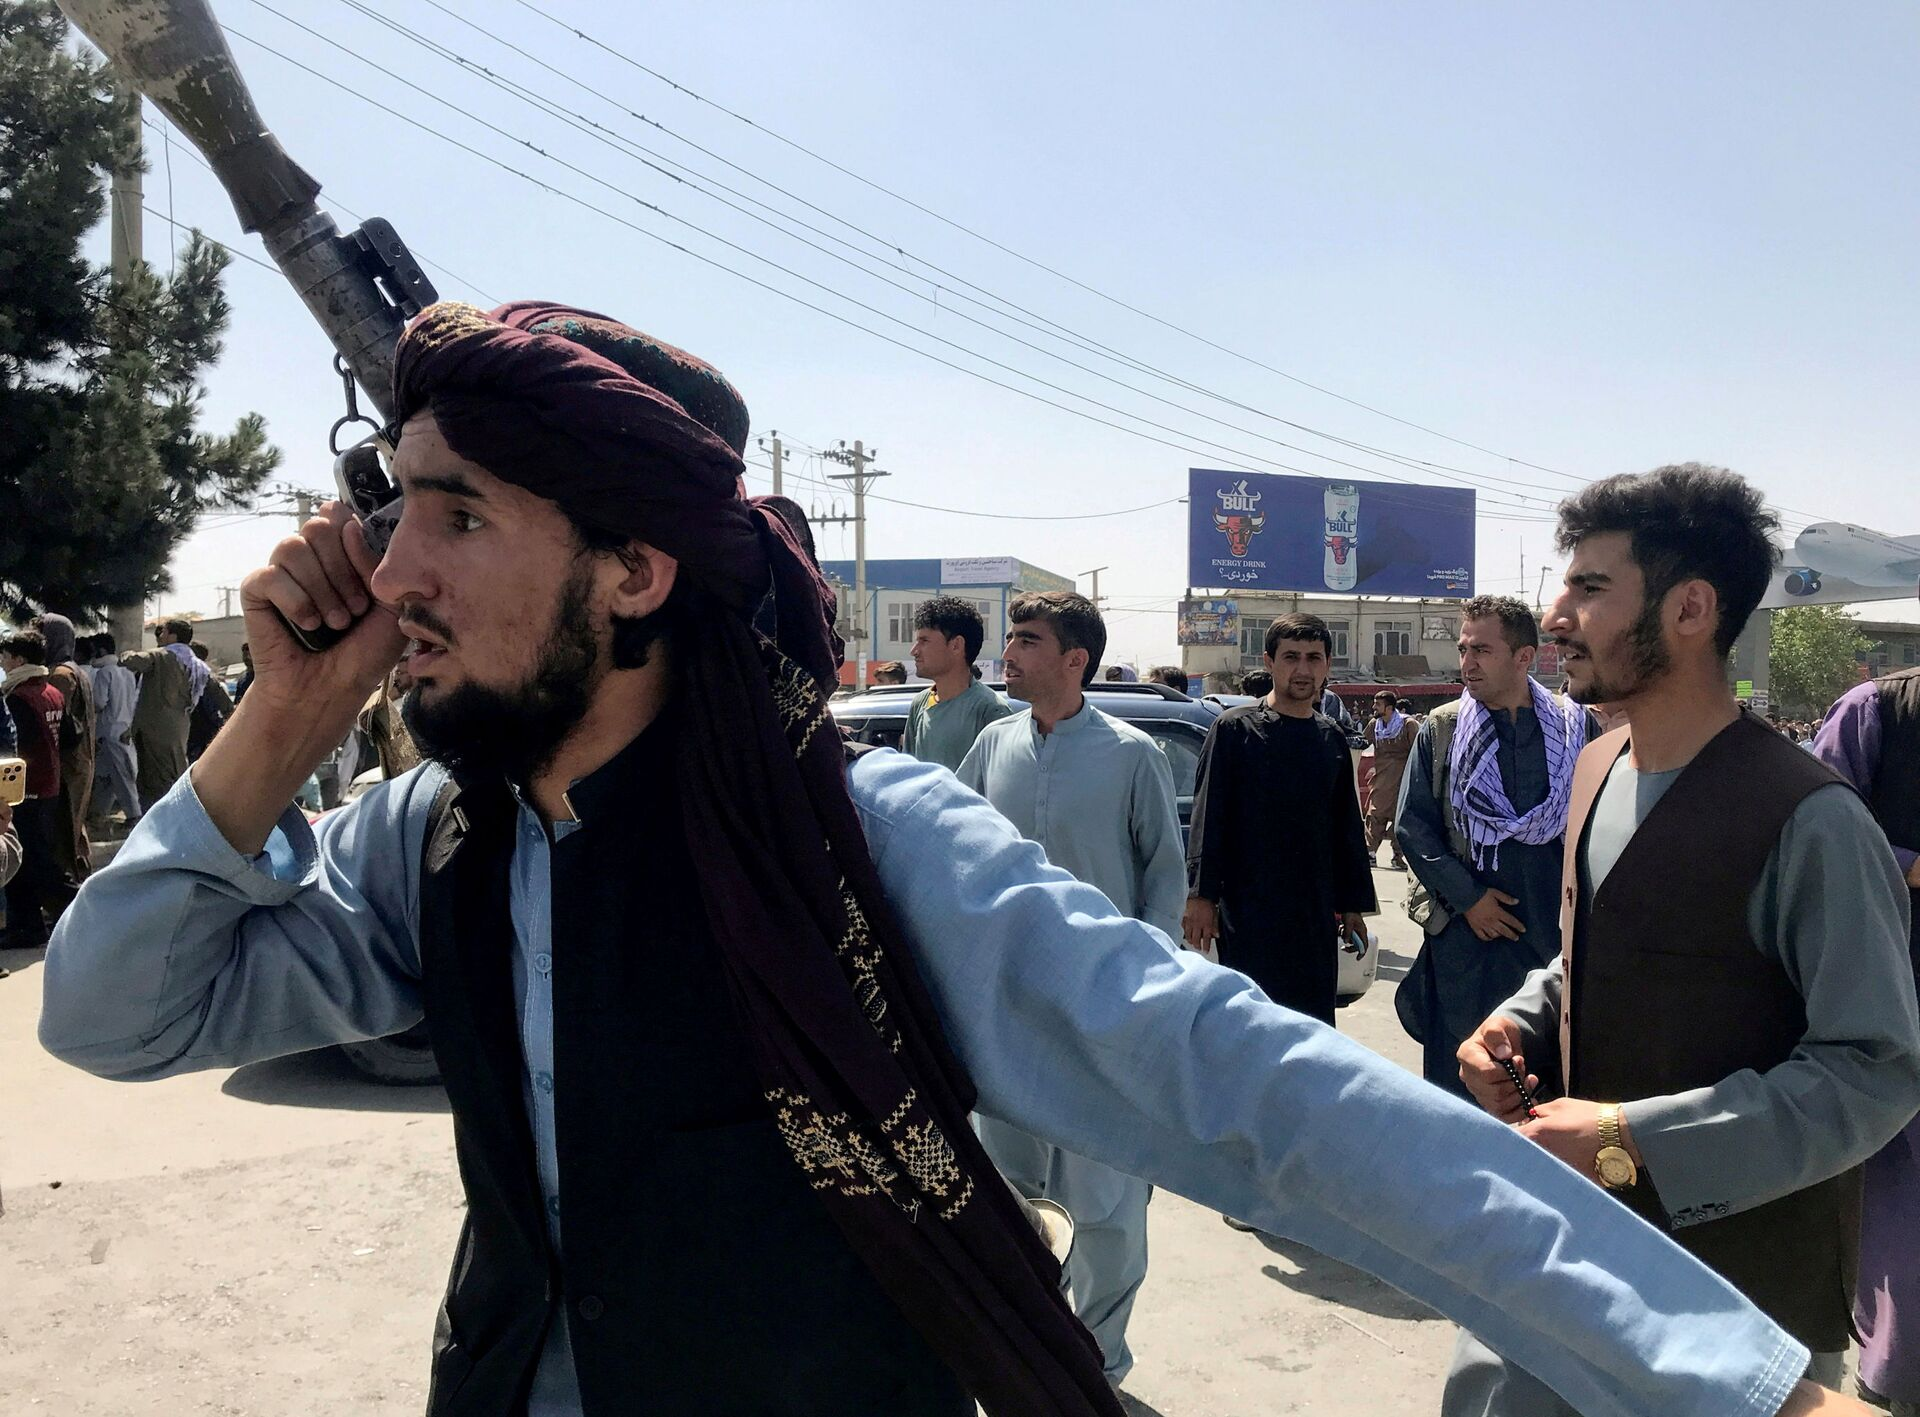 A member of Taliban forces inspects the area outside Hamid Karzai International Airport in Kabul, Afghanistan August 16, 2021 - Sputnik International, 1920, 07.09.2021